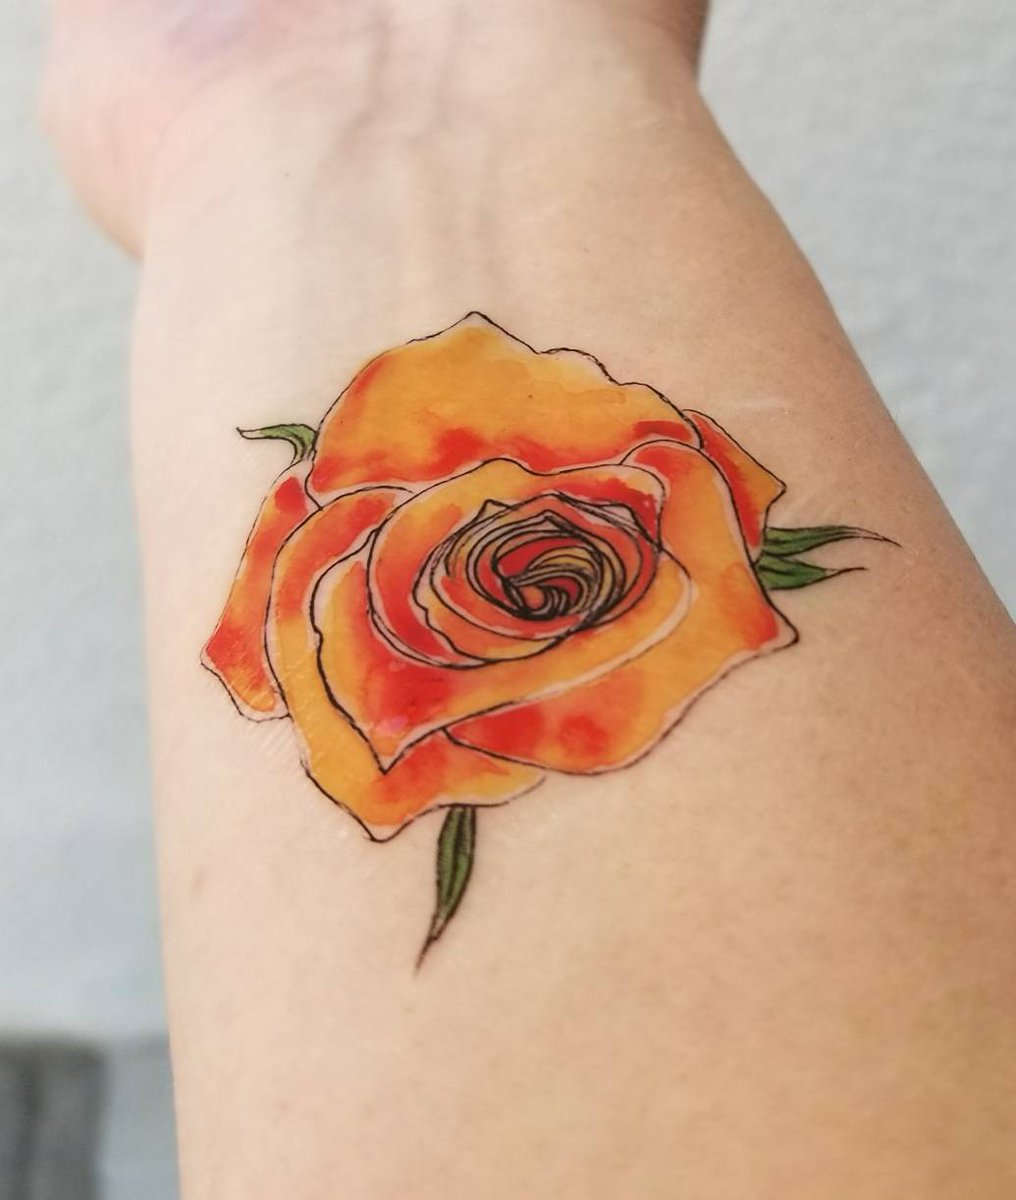 Constance Cole On Twitter Experimenting With Temporary Tattoos